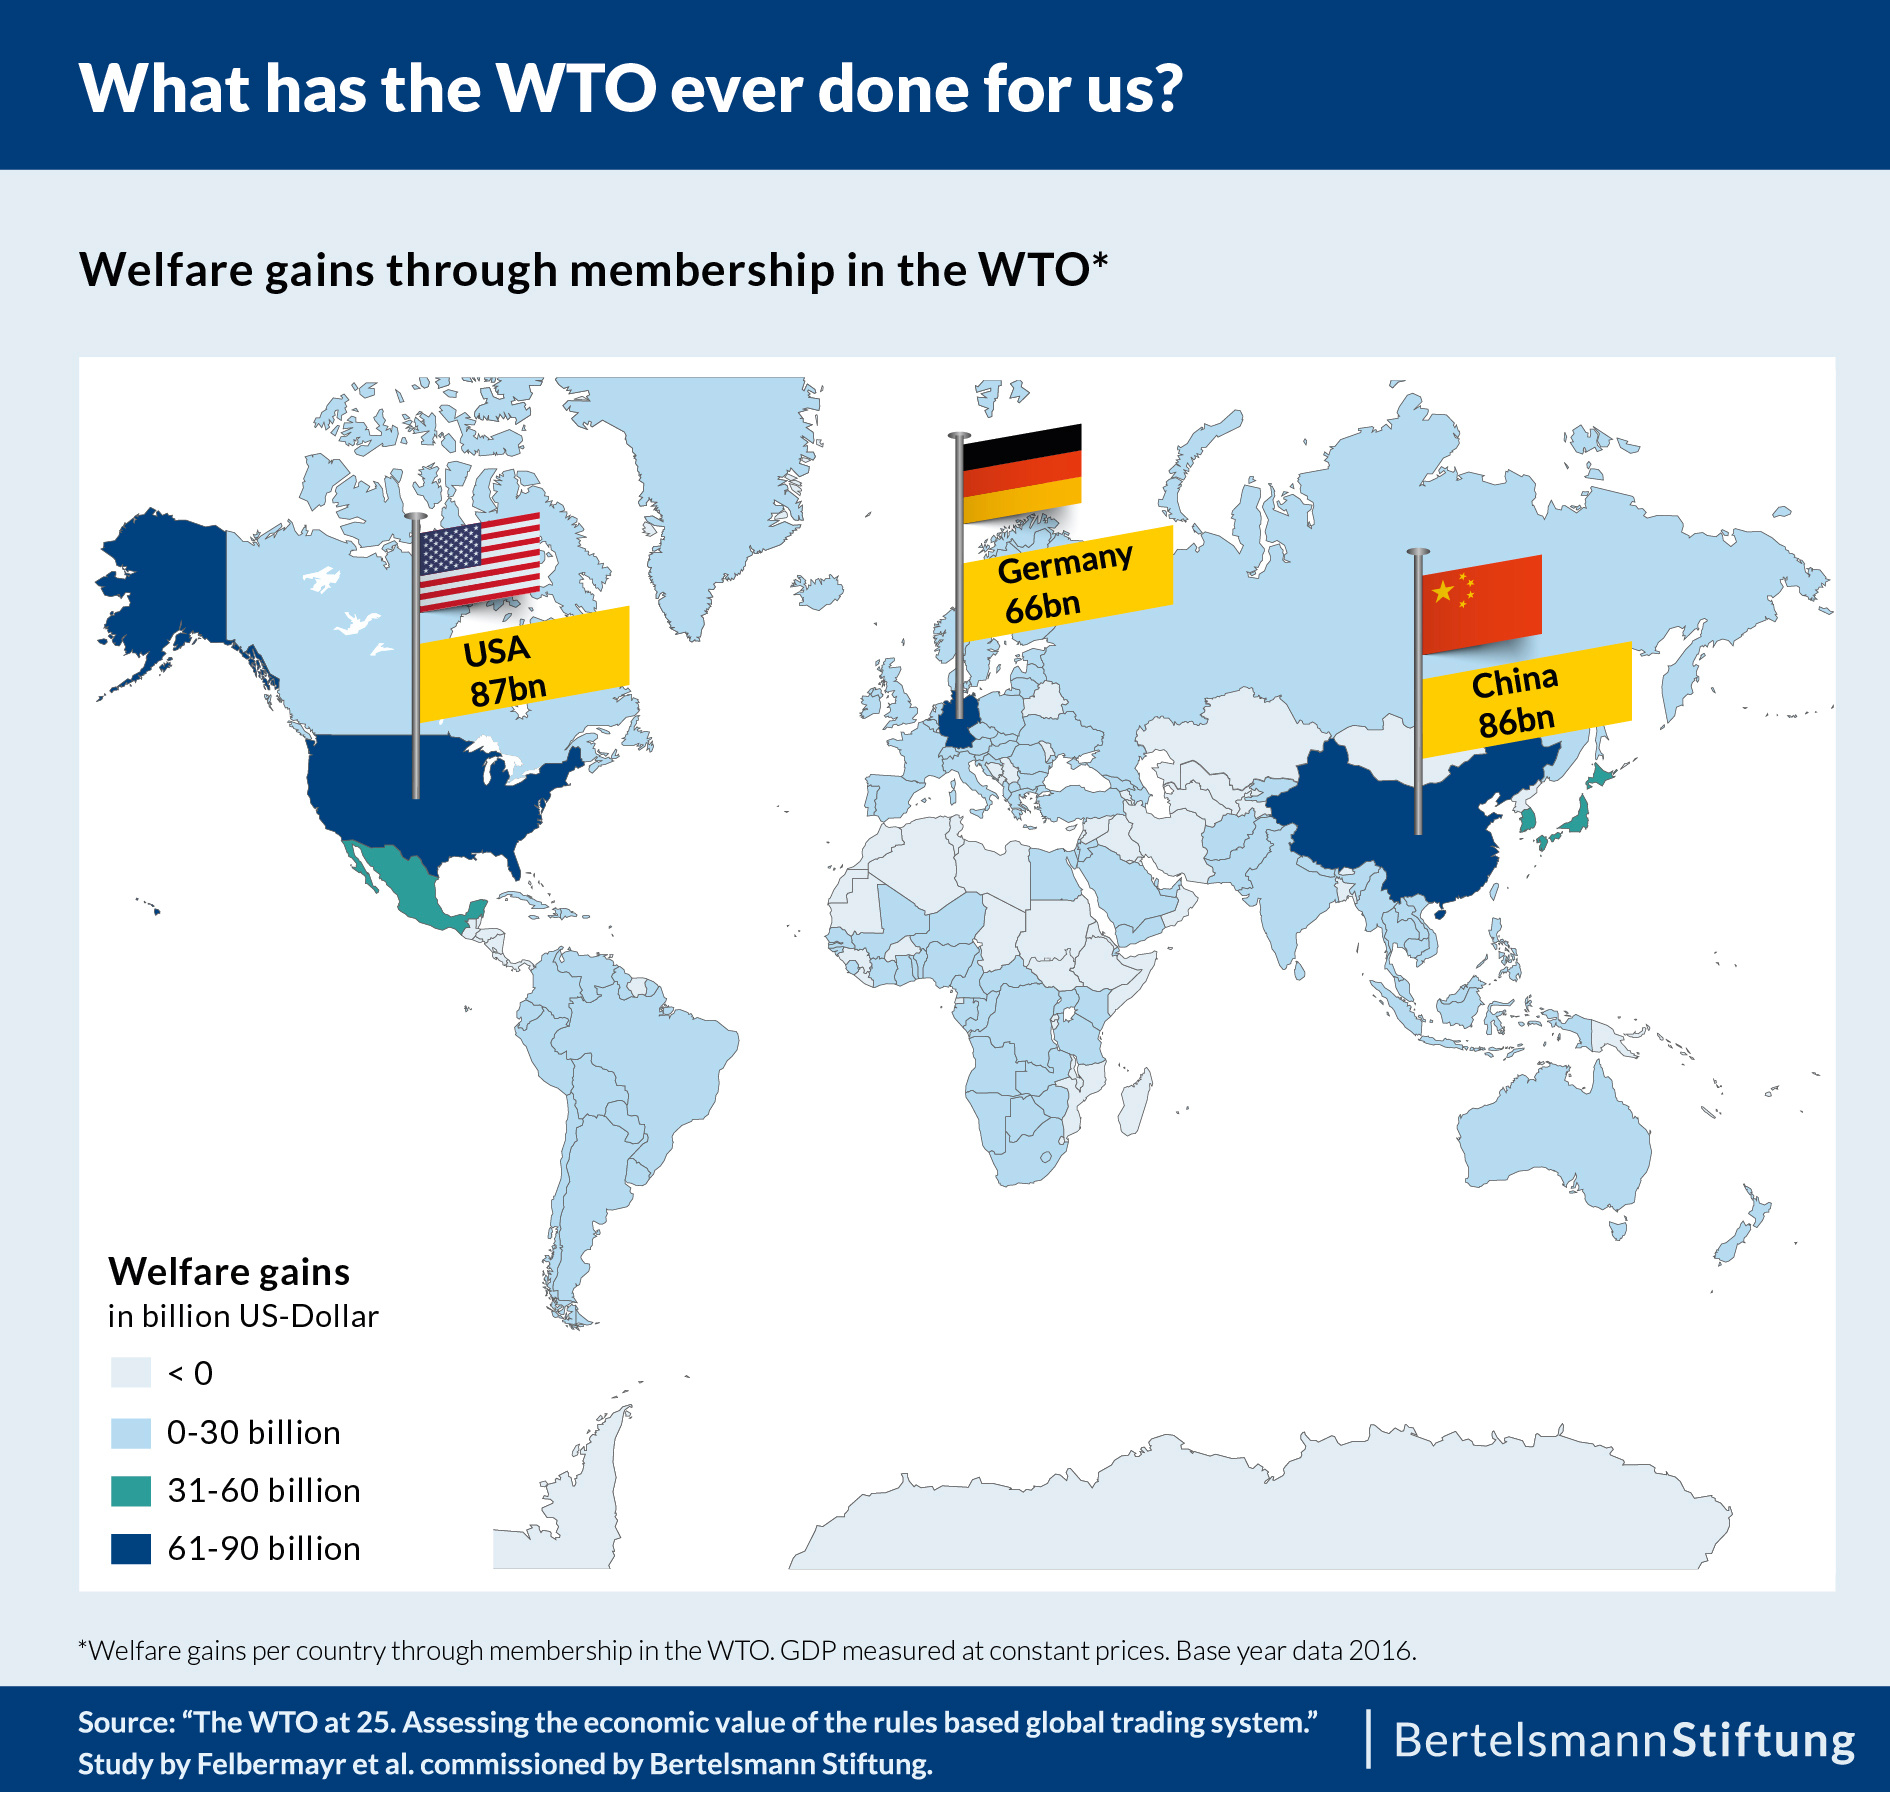 The USA, China and Germany benefit the most from the WTO, but also most other countries experience welfare gains through their WTO membership.